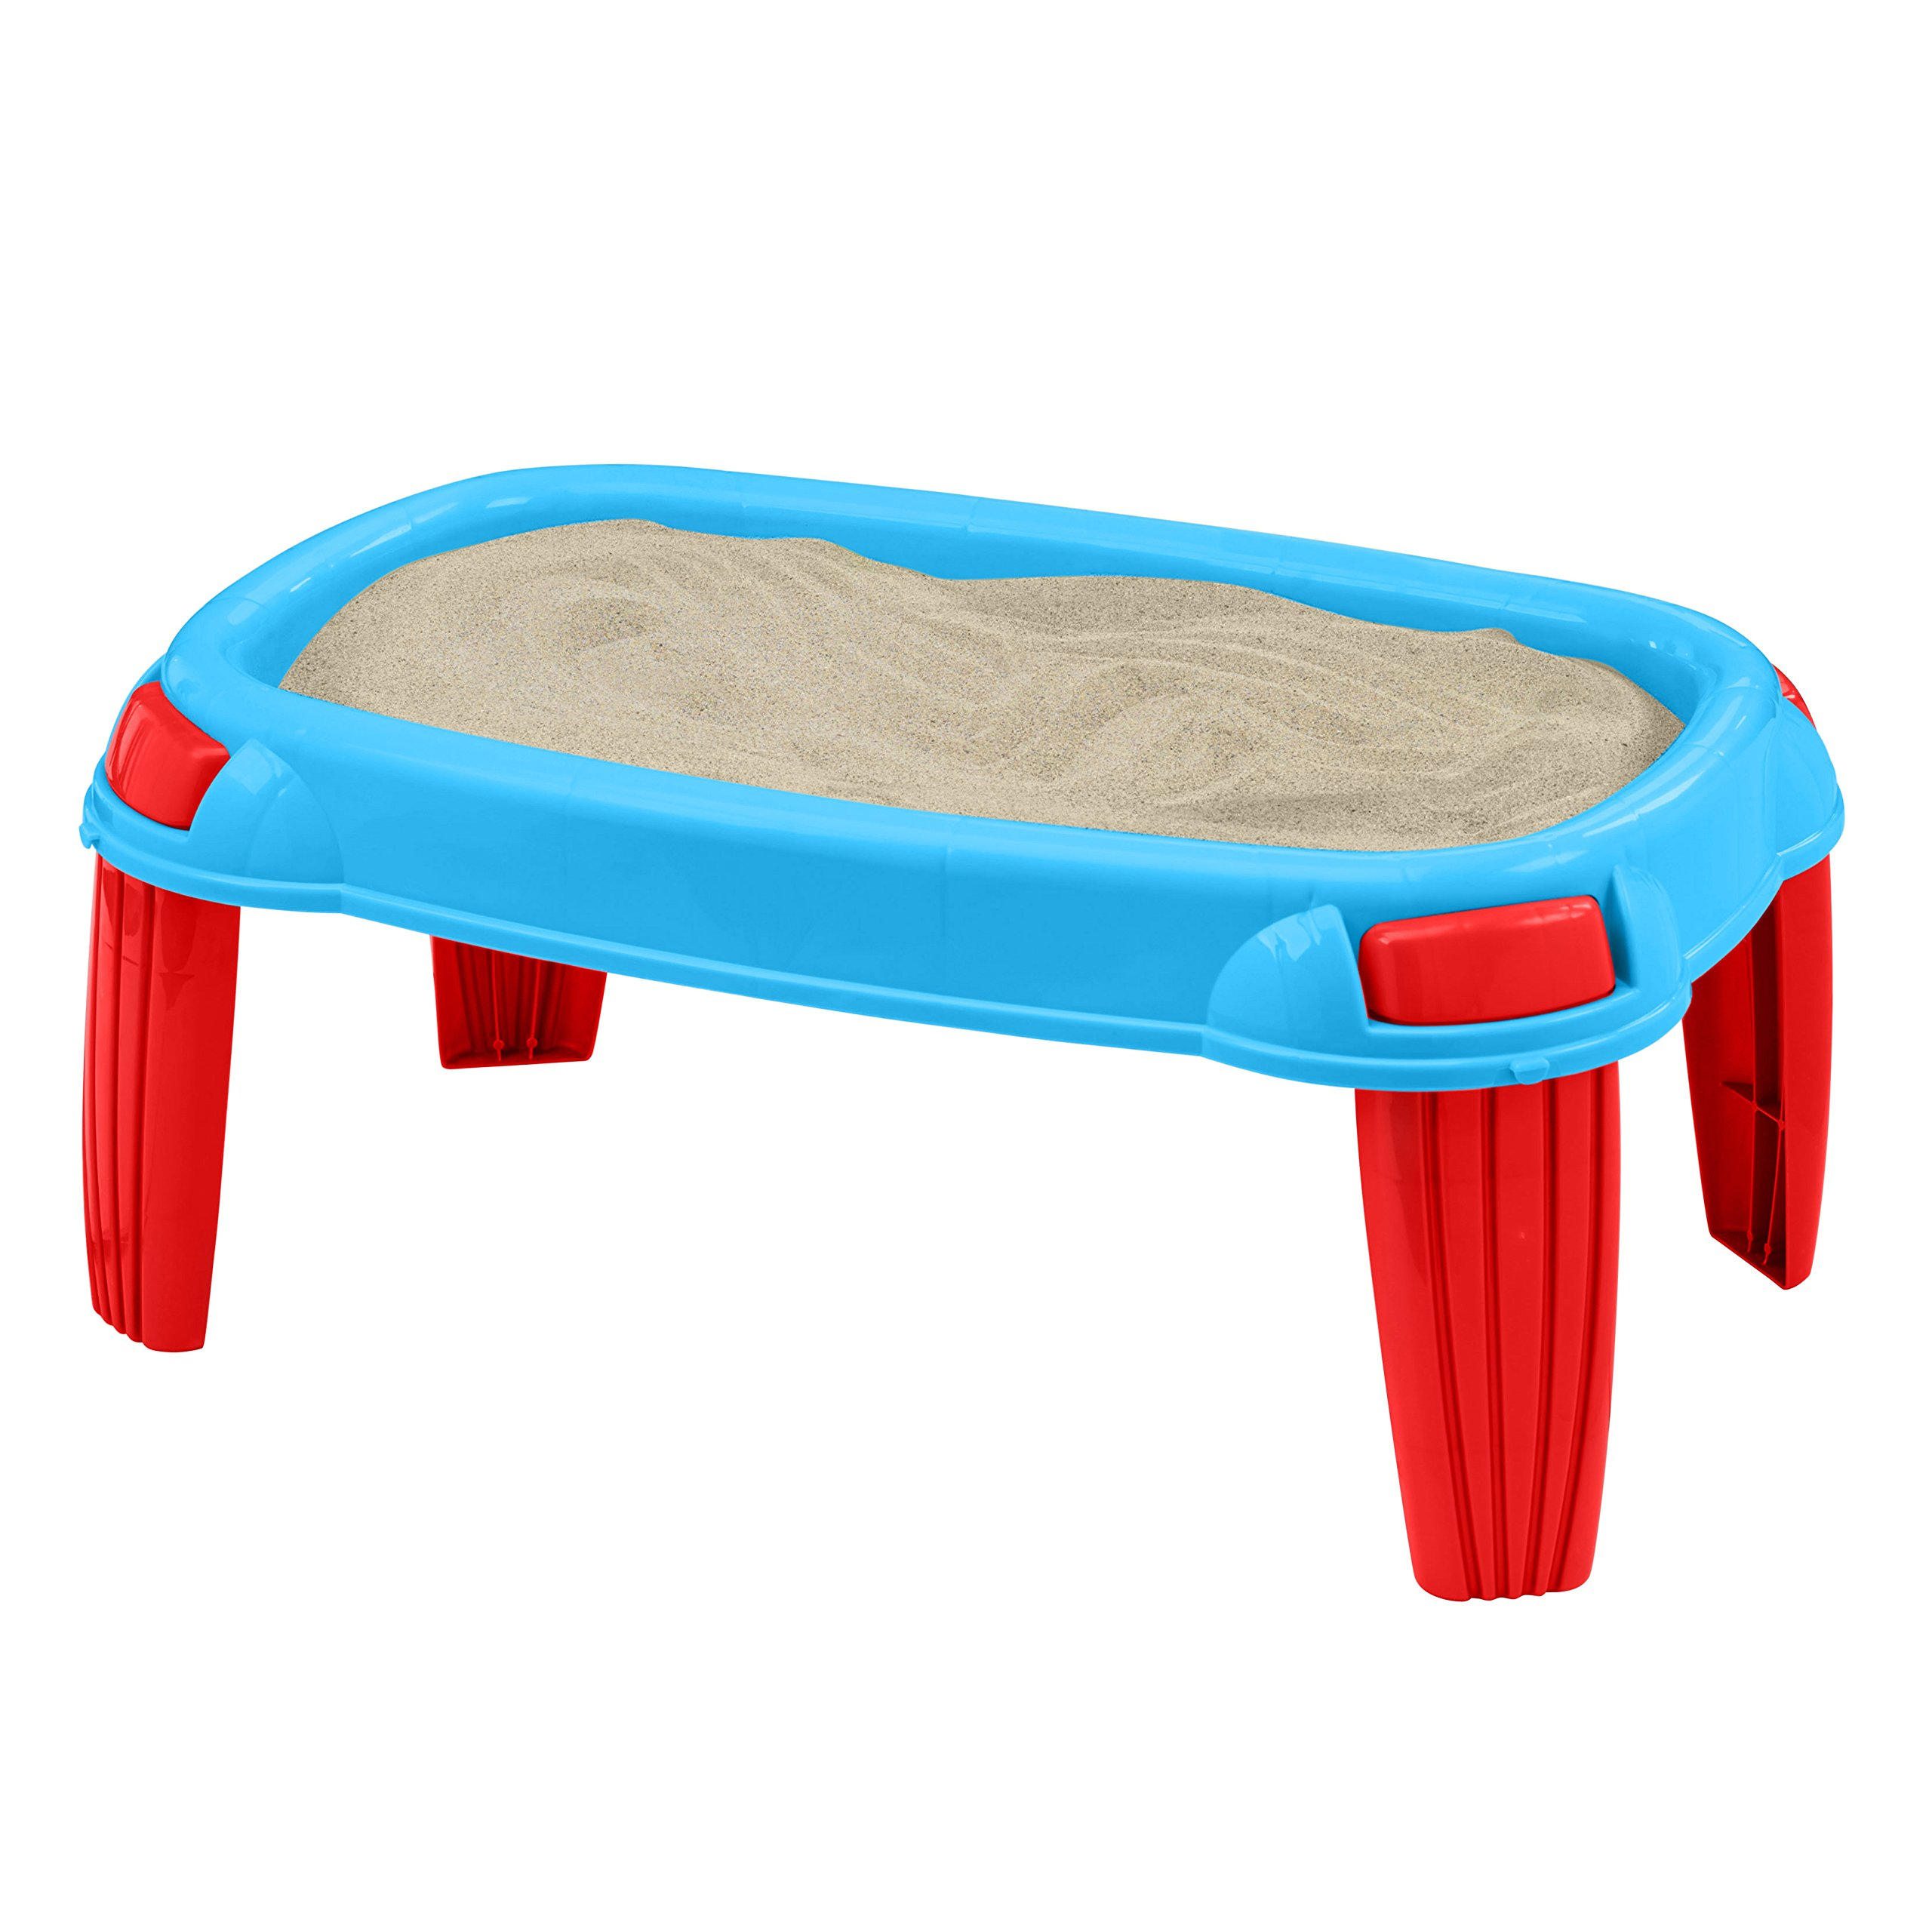 American Plastic Toys Kids Outdoor Sand Table by American Plastic Toys